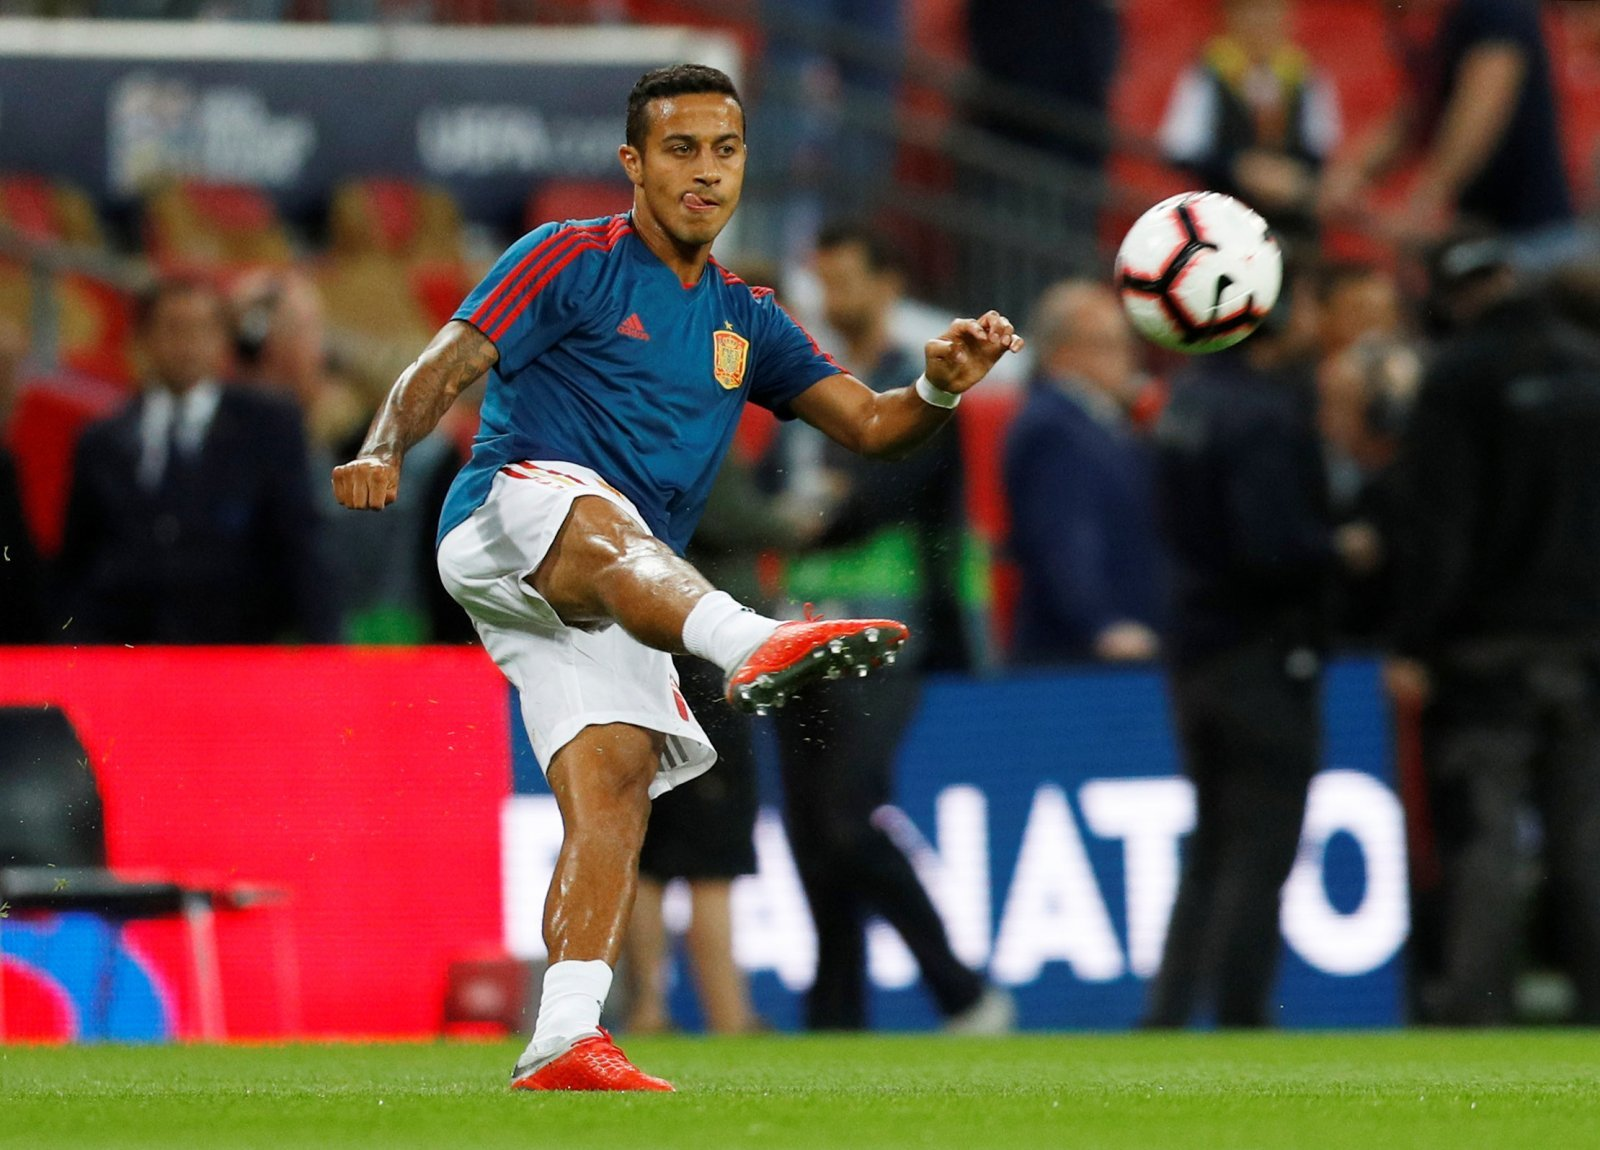 Thiago exactly the kind of superstar desperately needed at Tottenham